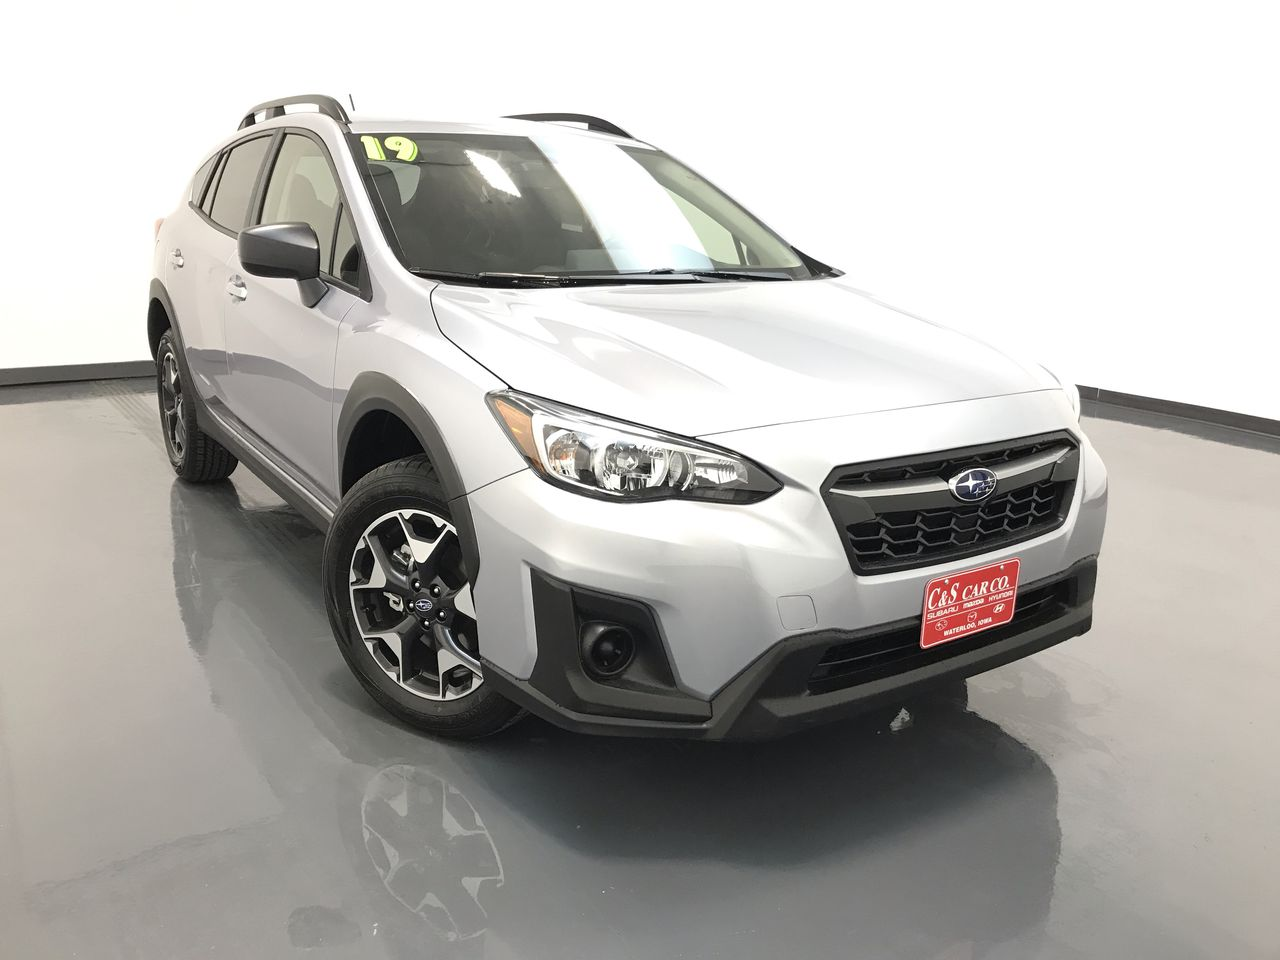 2019 Subaru Crosstrek 2.0i  w/Eyesight  - SC8105  - C & S Car Company